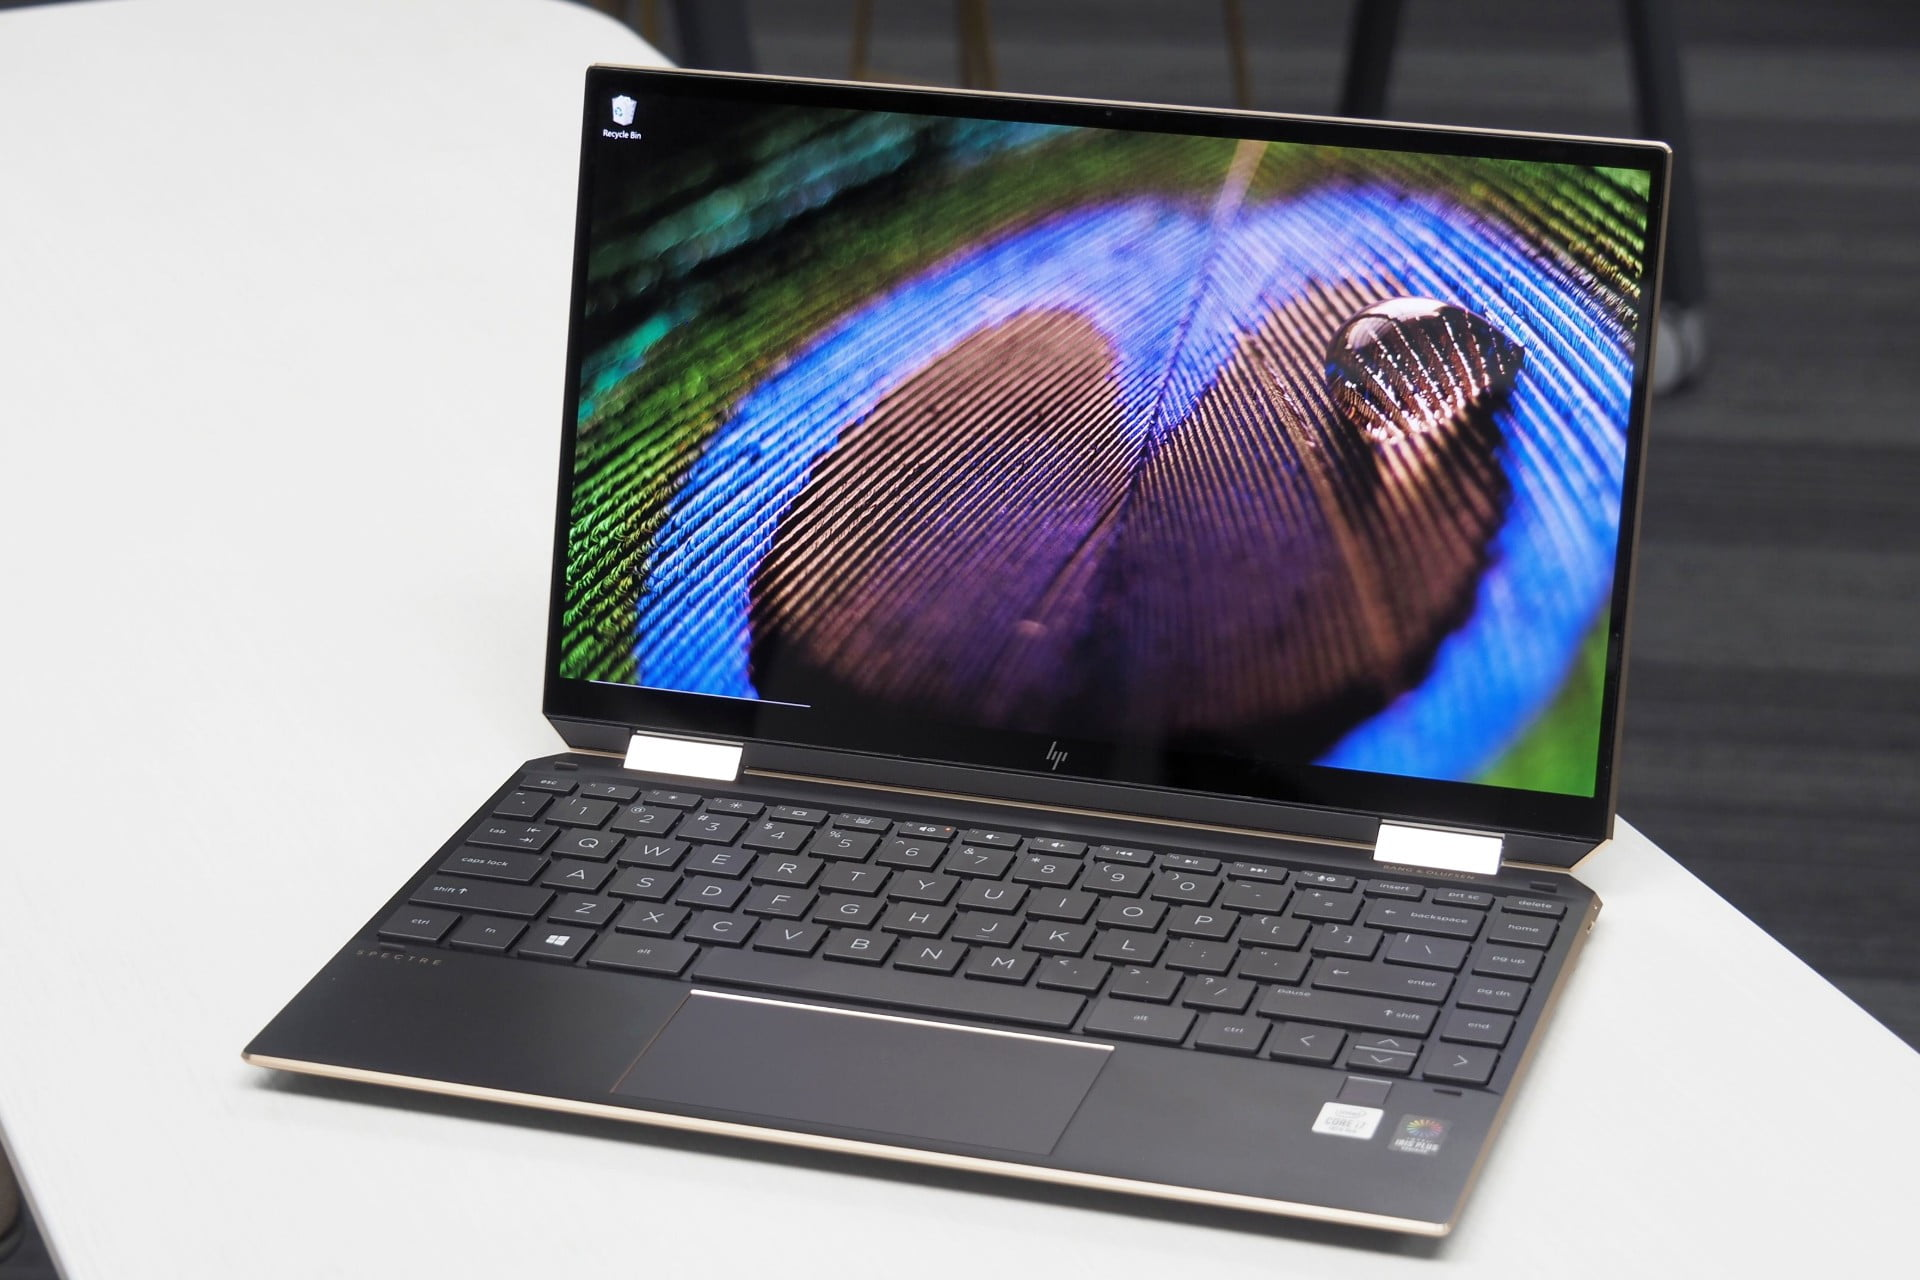 HP Spectre x360 13 front view showing display and keyboard deck.